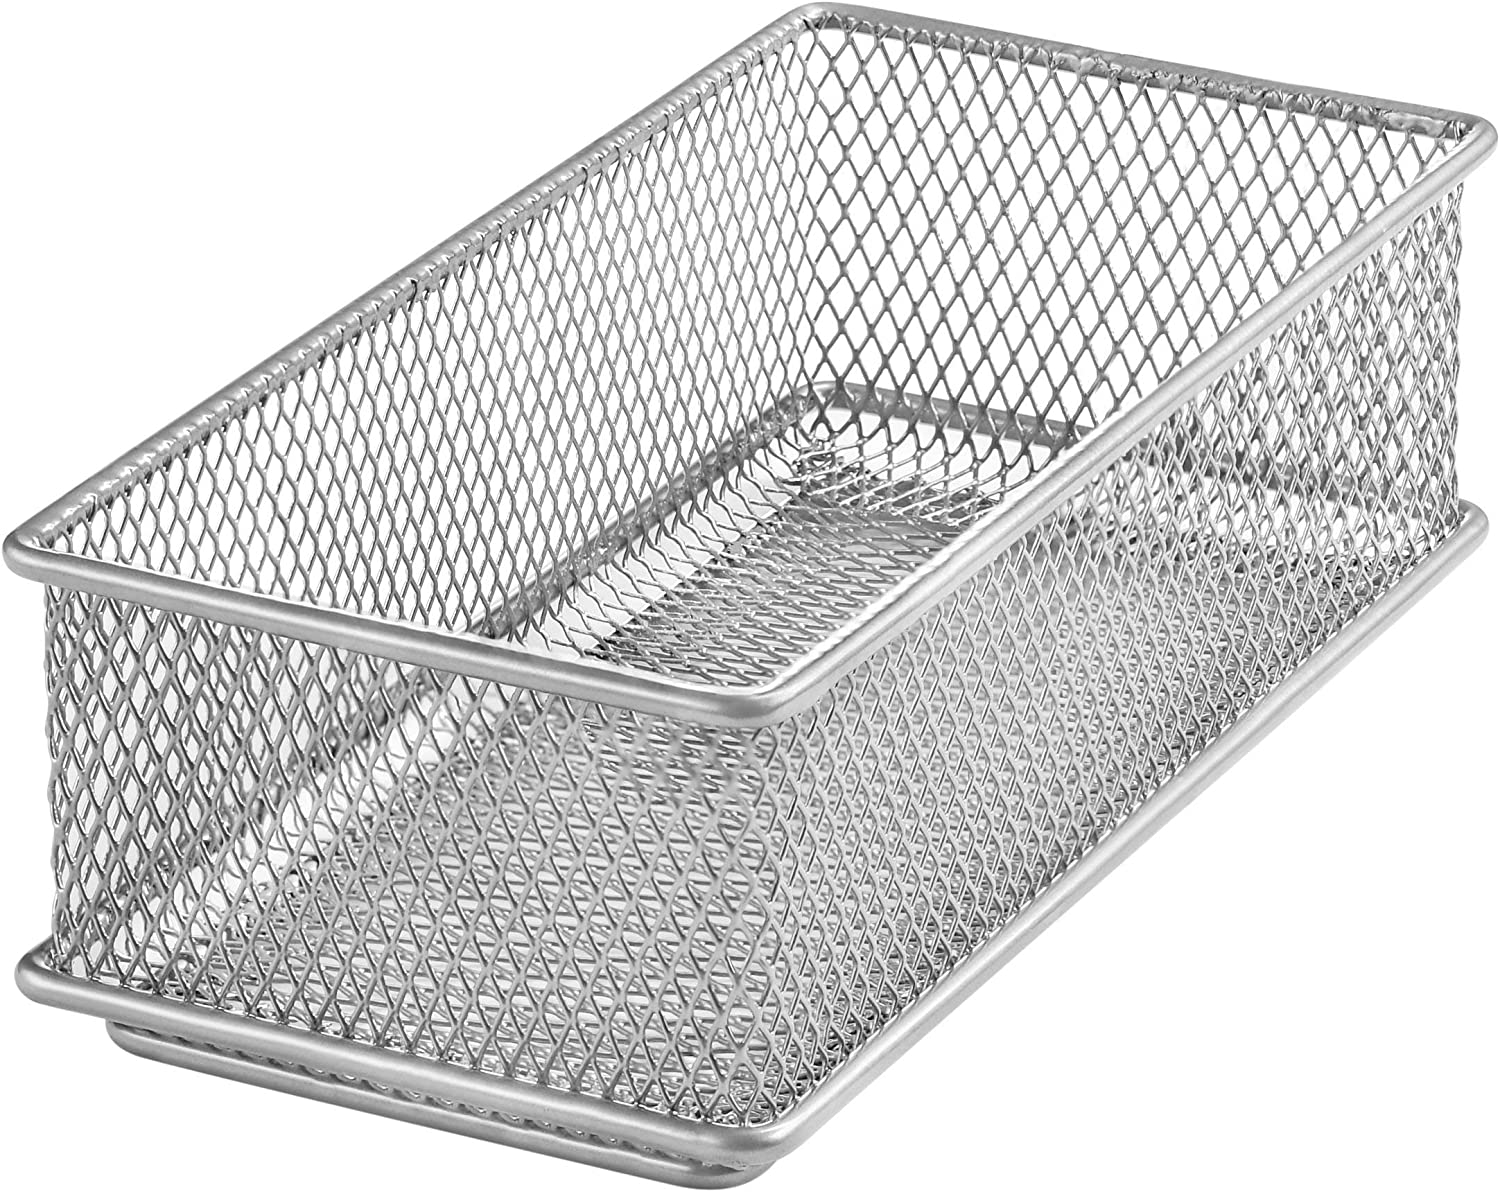 Ybm Home Silver Mesh Drawer Cabinet and or Shelf Organizer Bins, School Supply Holder Office Desktop Organizer Basket 1594s (1, 3x6x2 Inch)